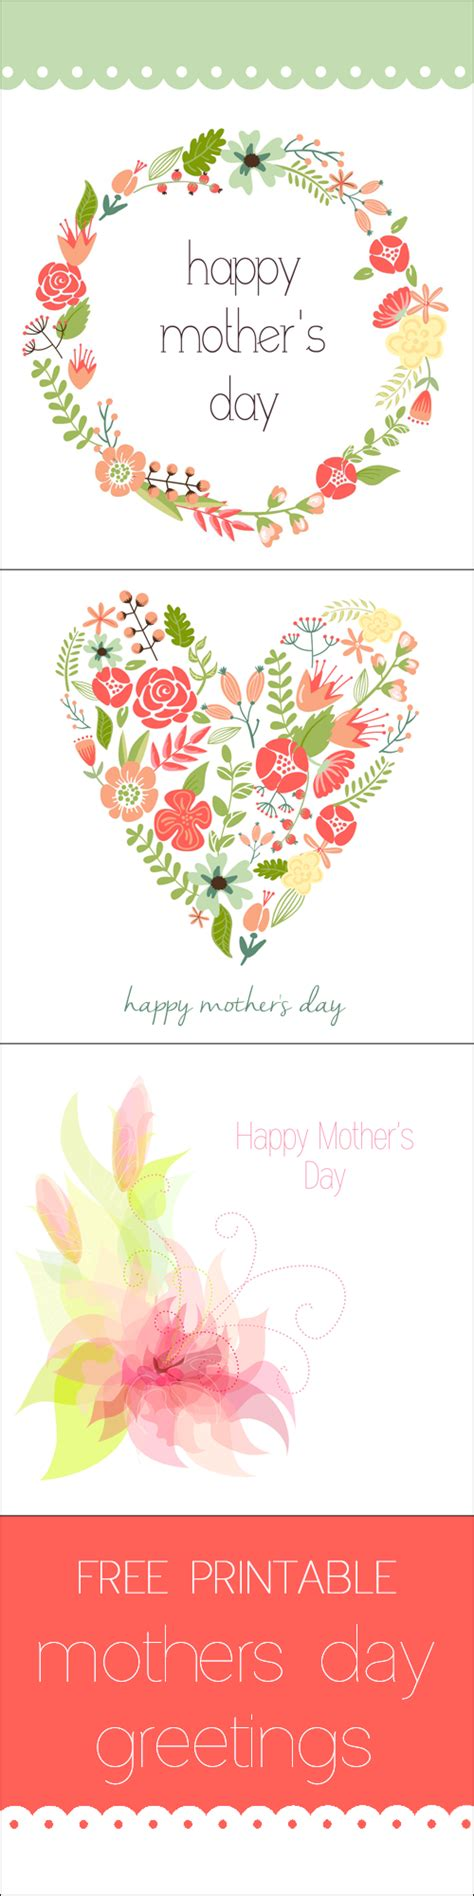 printable greeting cards mother s day mothers day cards free printable greetings for your mom